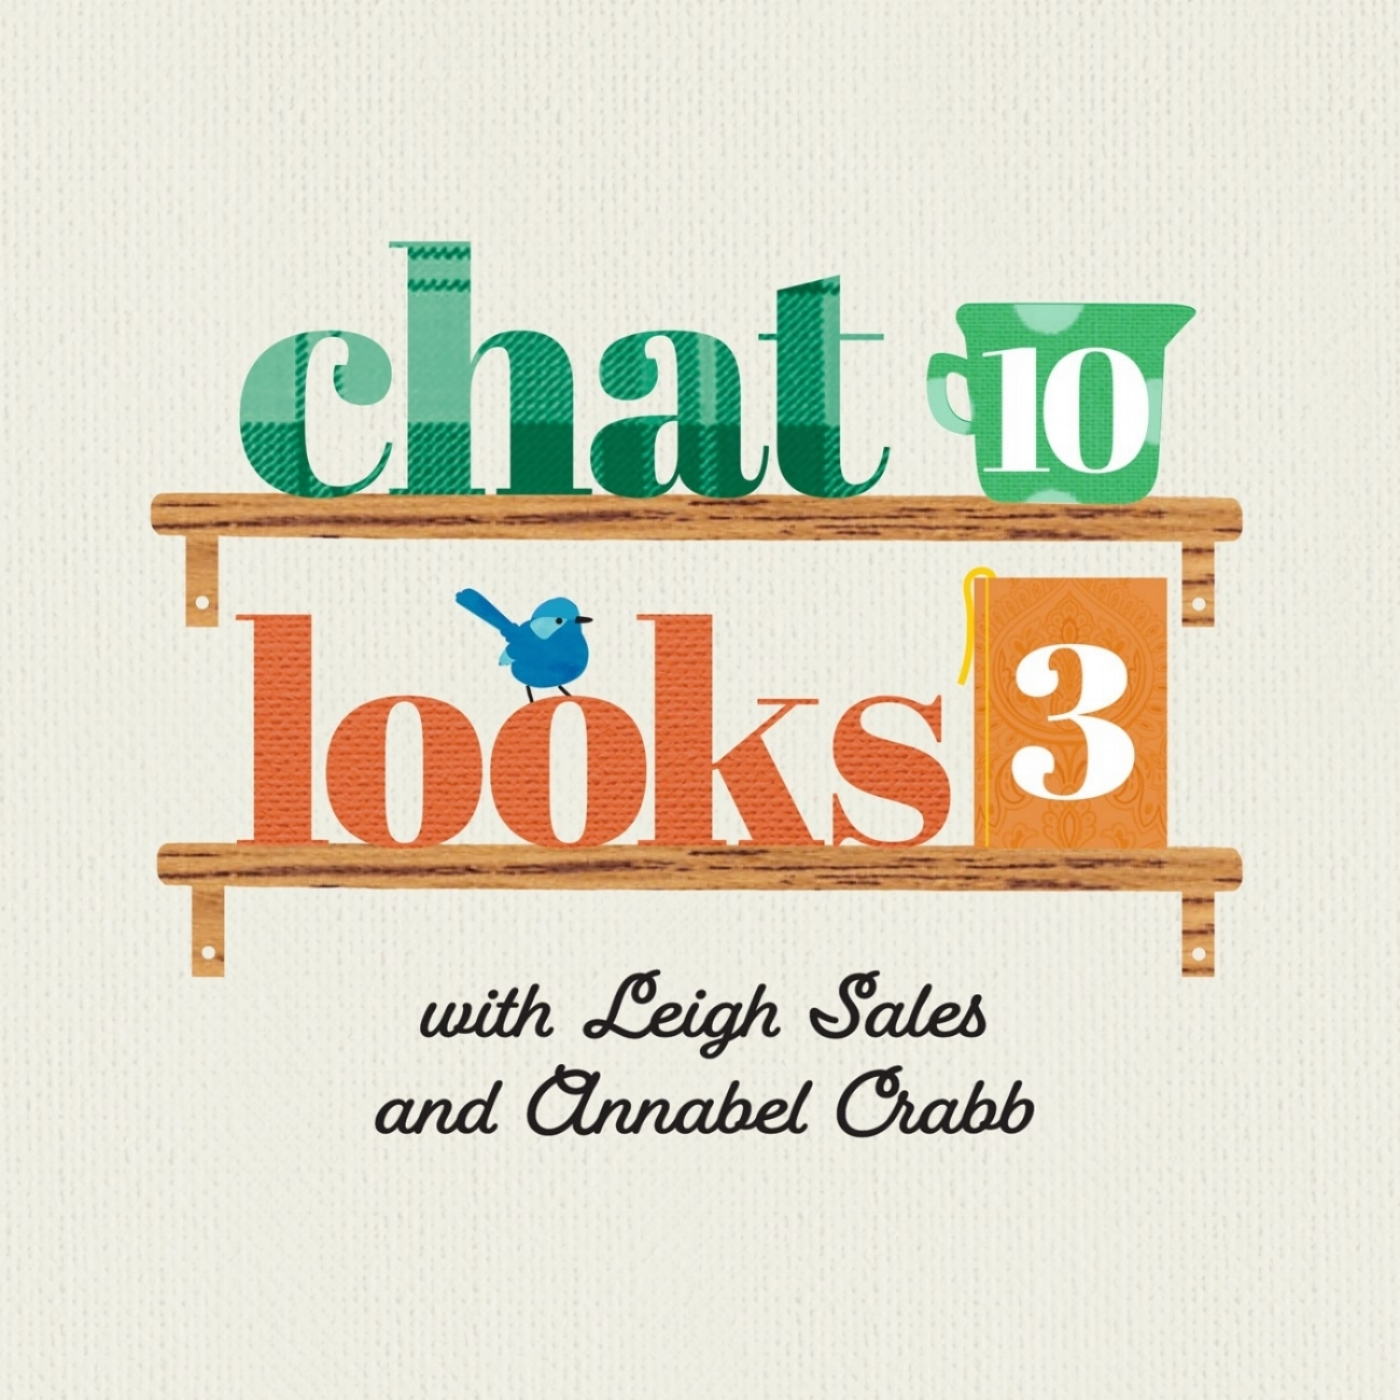 Image result for chat 10 looks 3